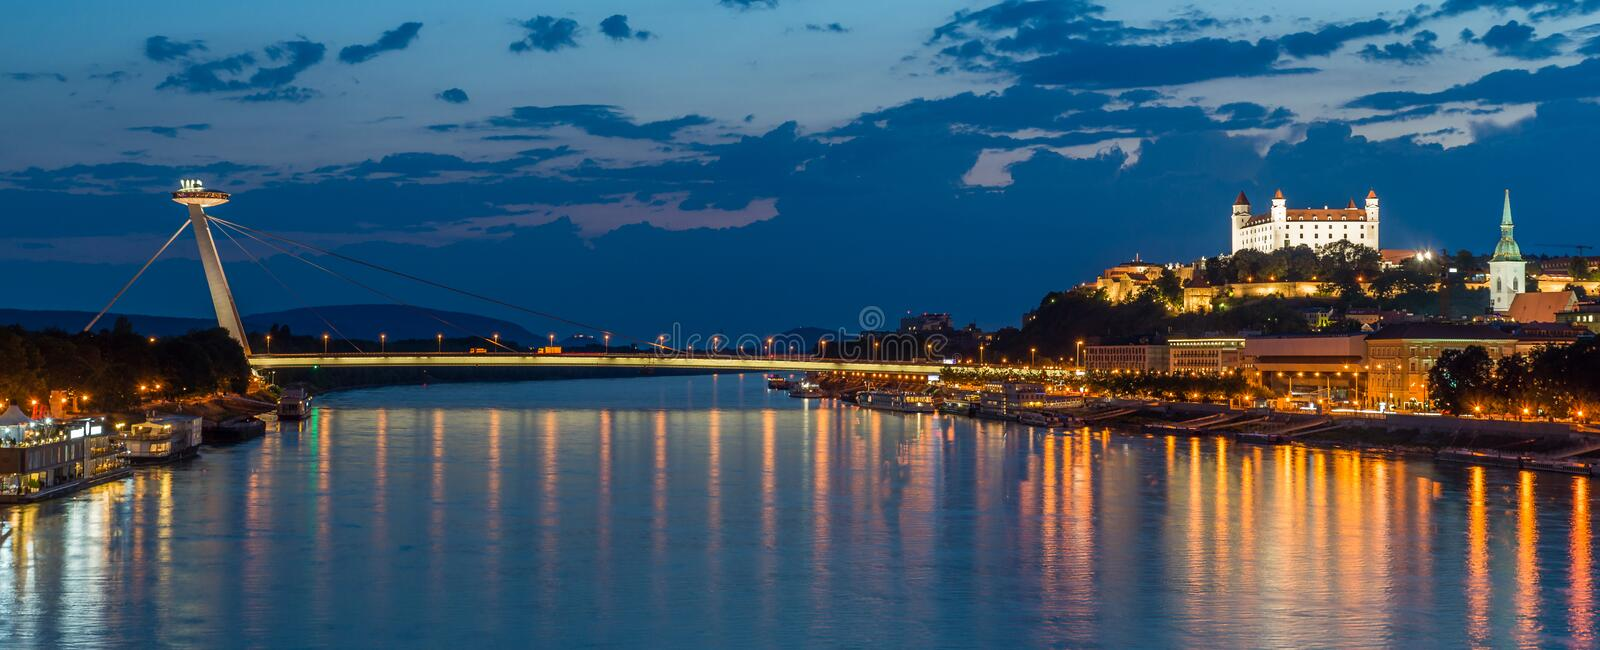 Night view on new bridge in Bratislava with castle on right side royalty free stock image